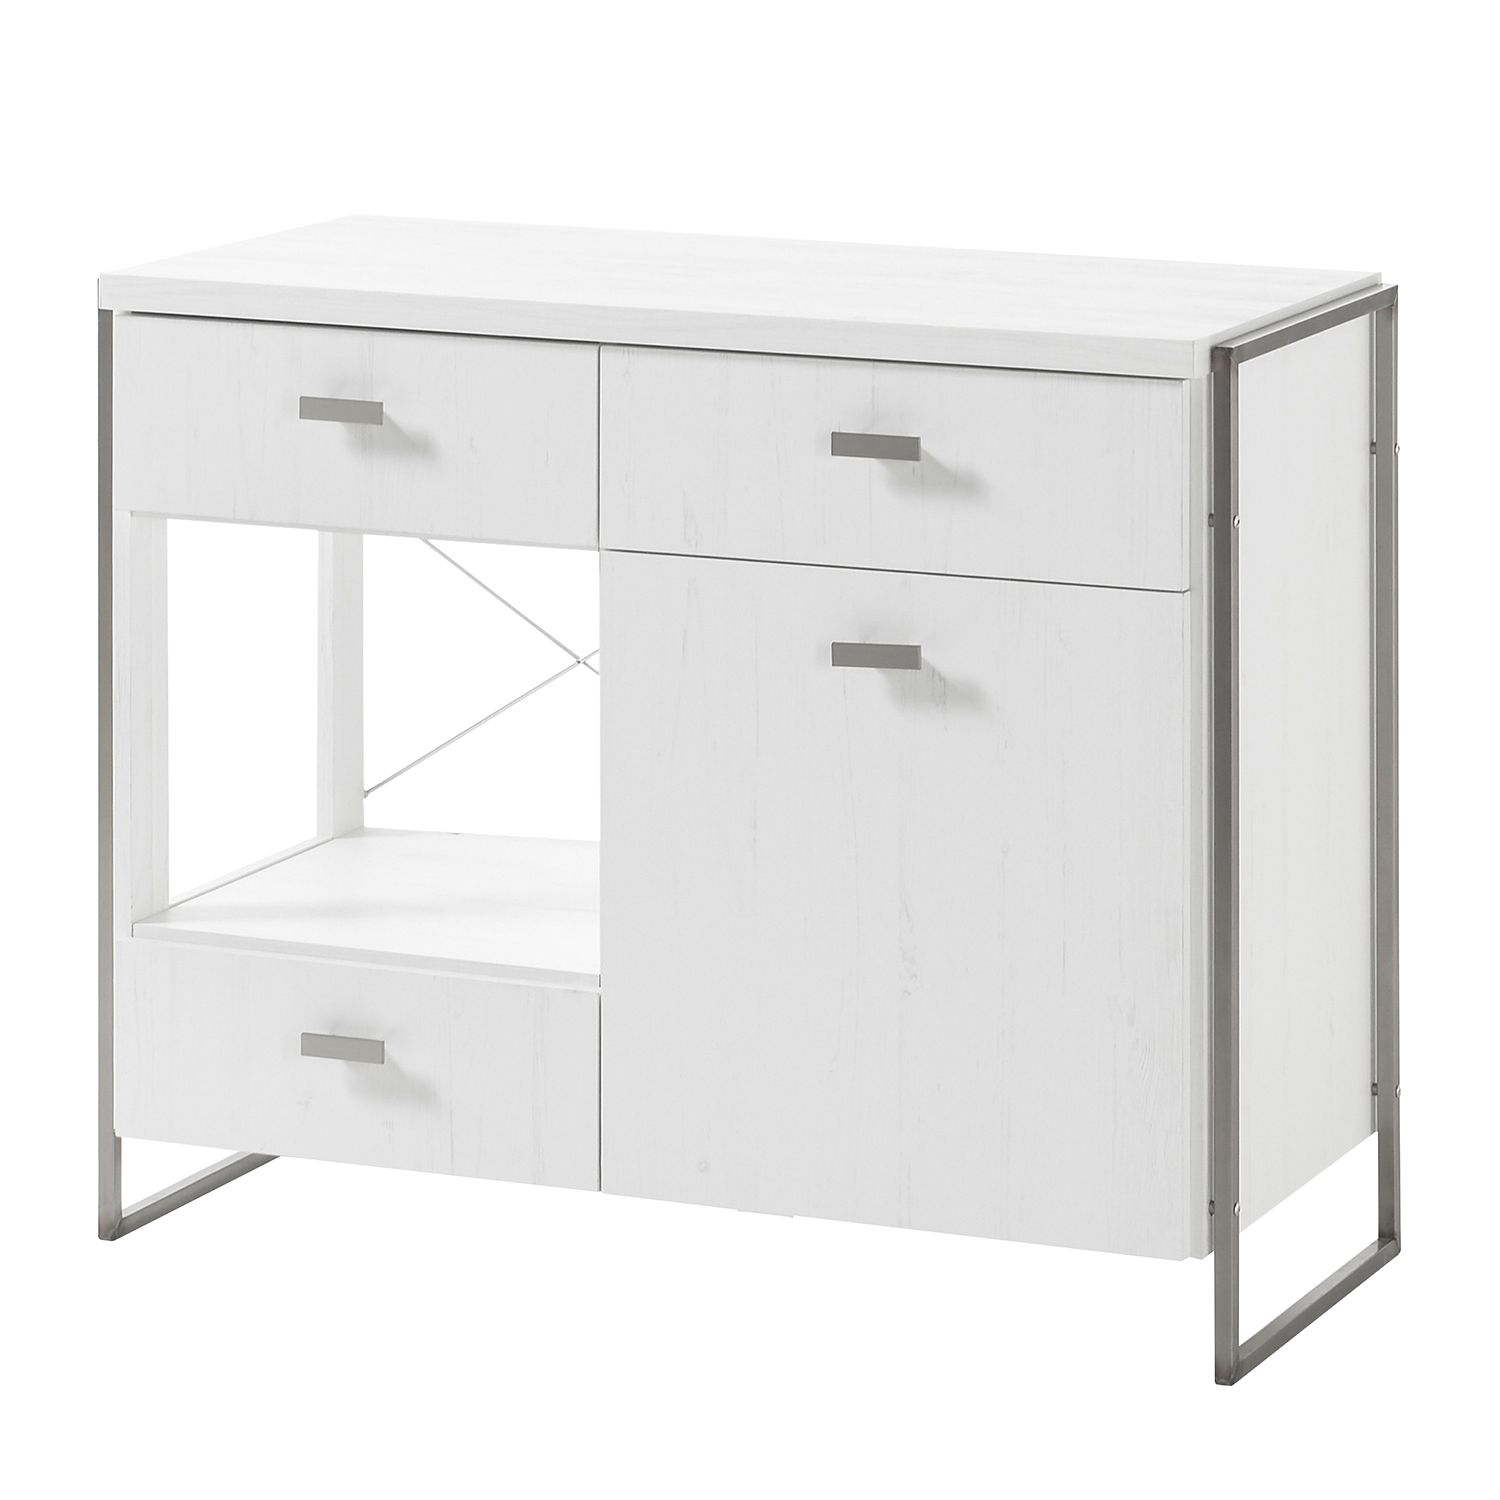 Commode Pryor - Imitation pin blanc / Argenté, Fredriks